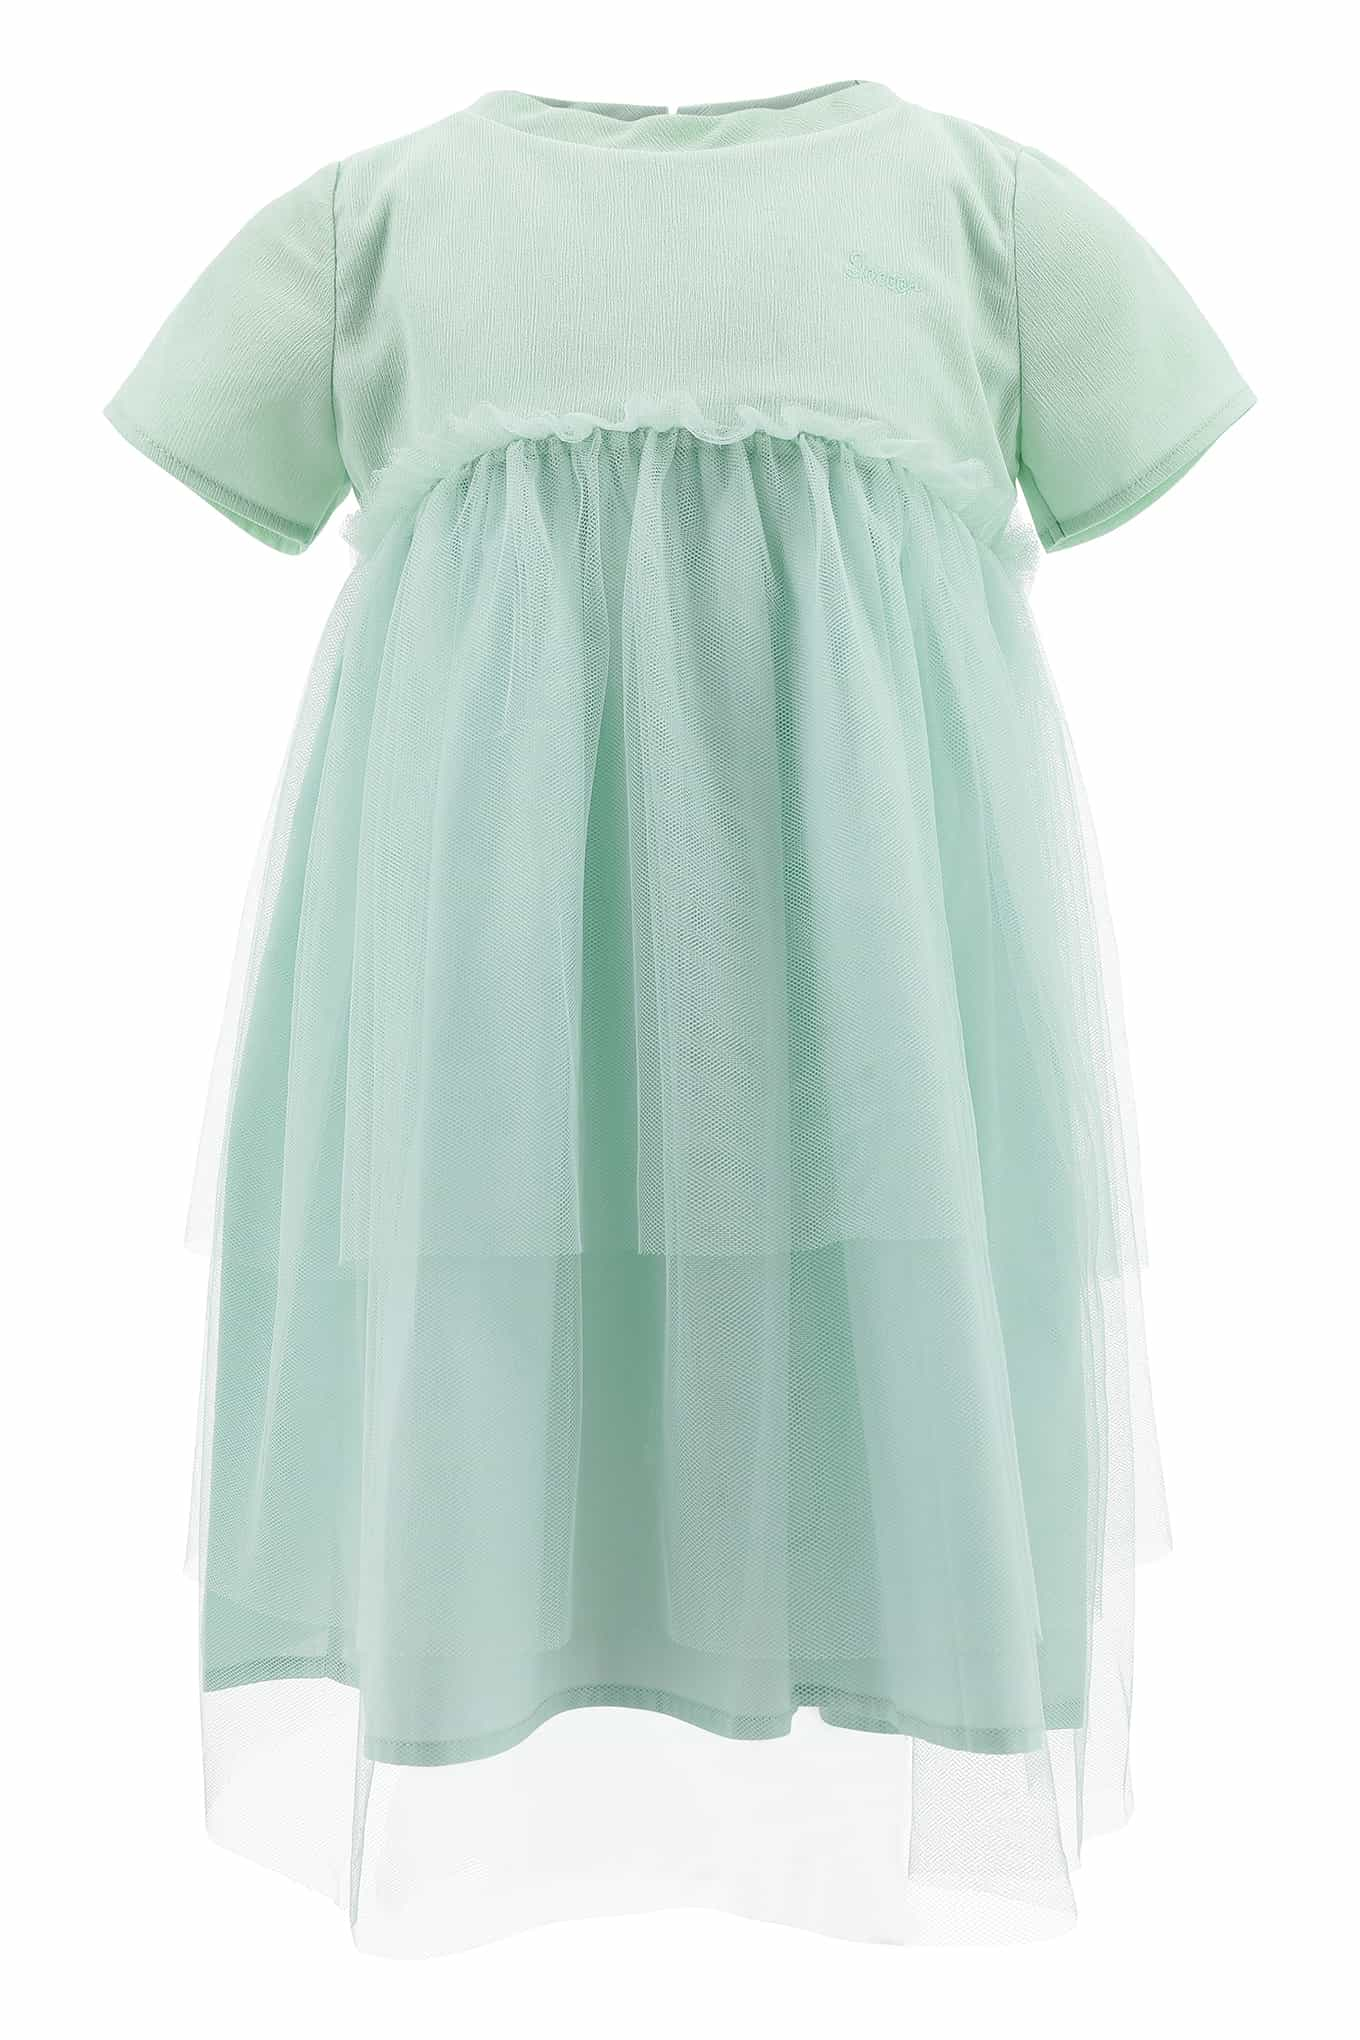 Dress Mint Casual Girl